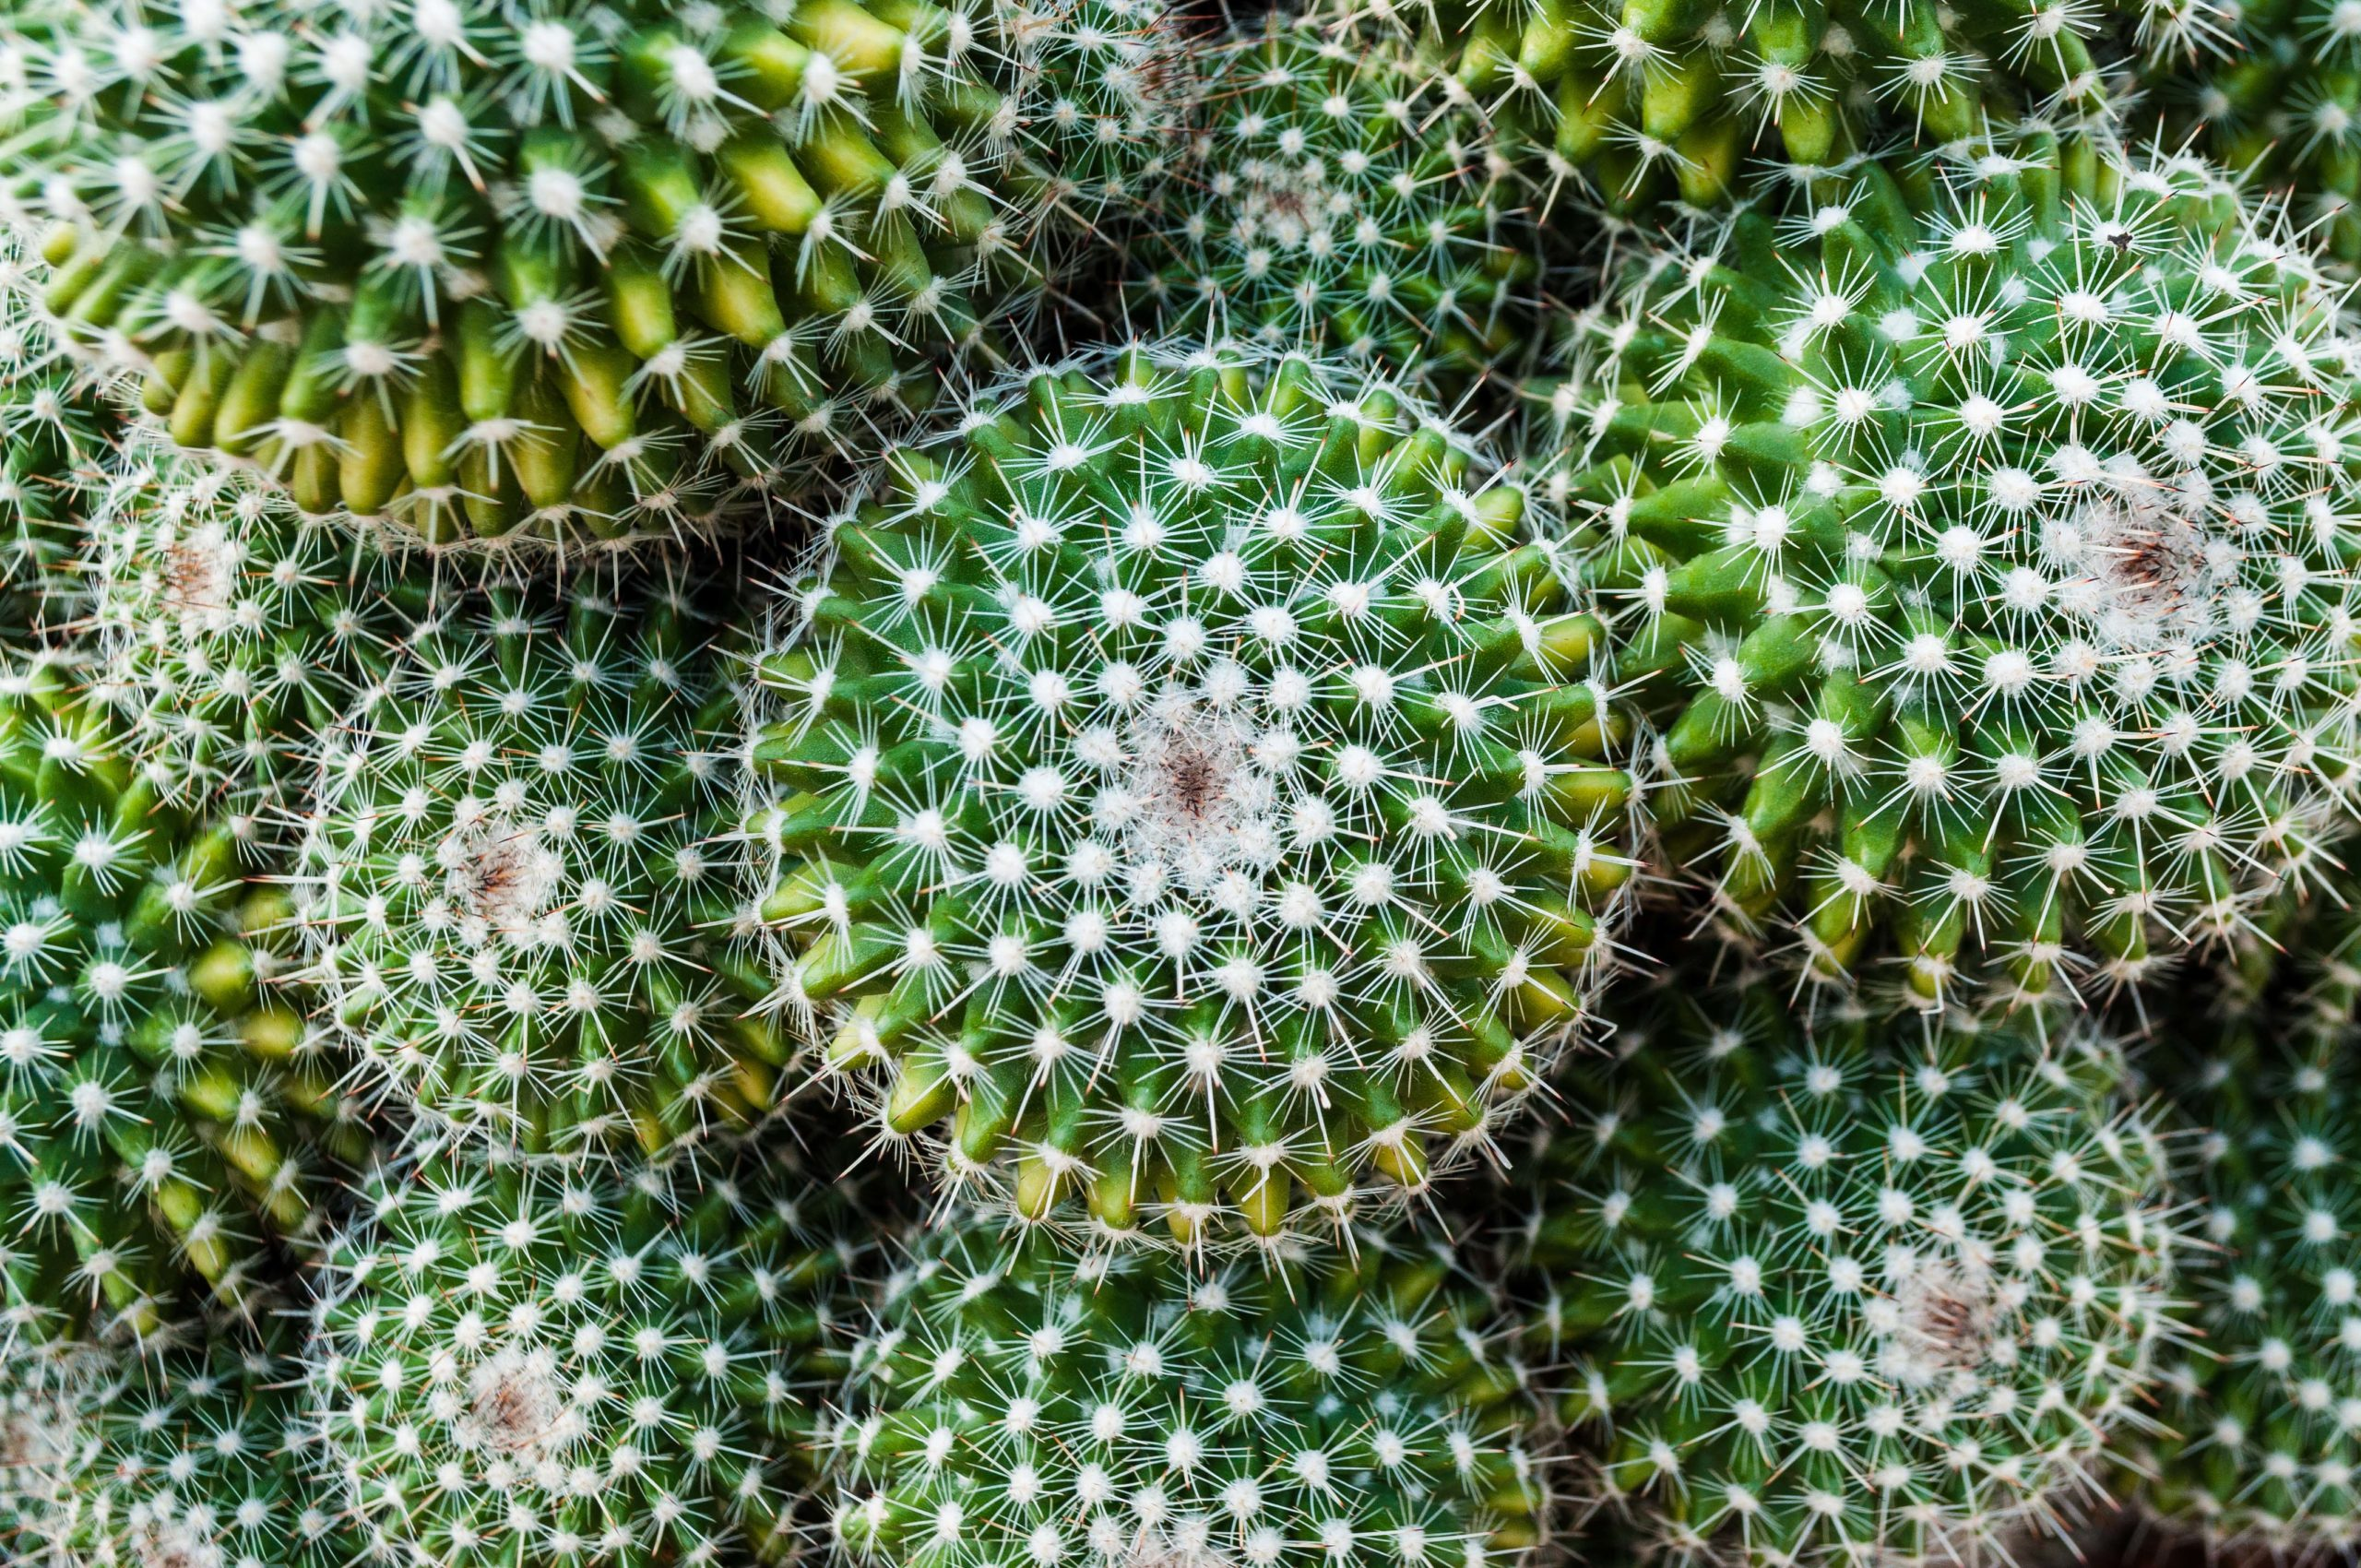 How To Grow A Hydroponic Cactus